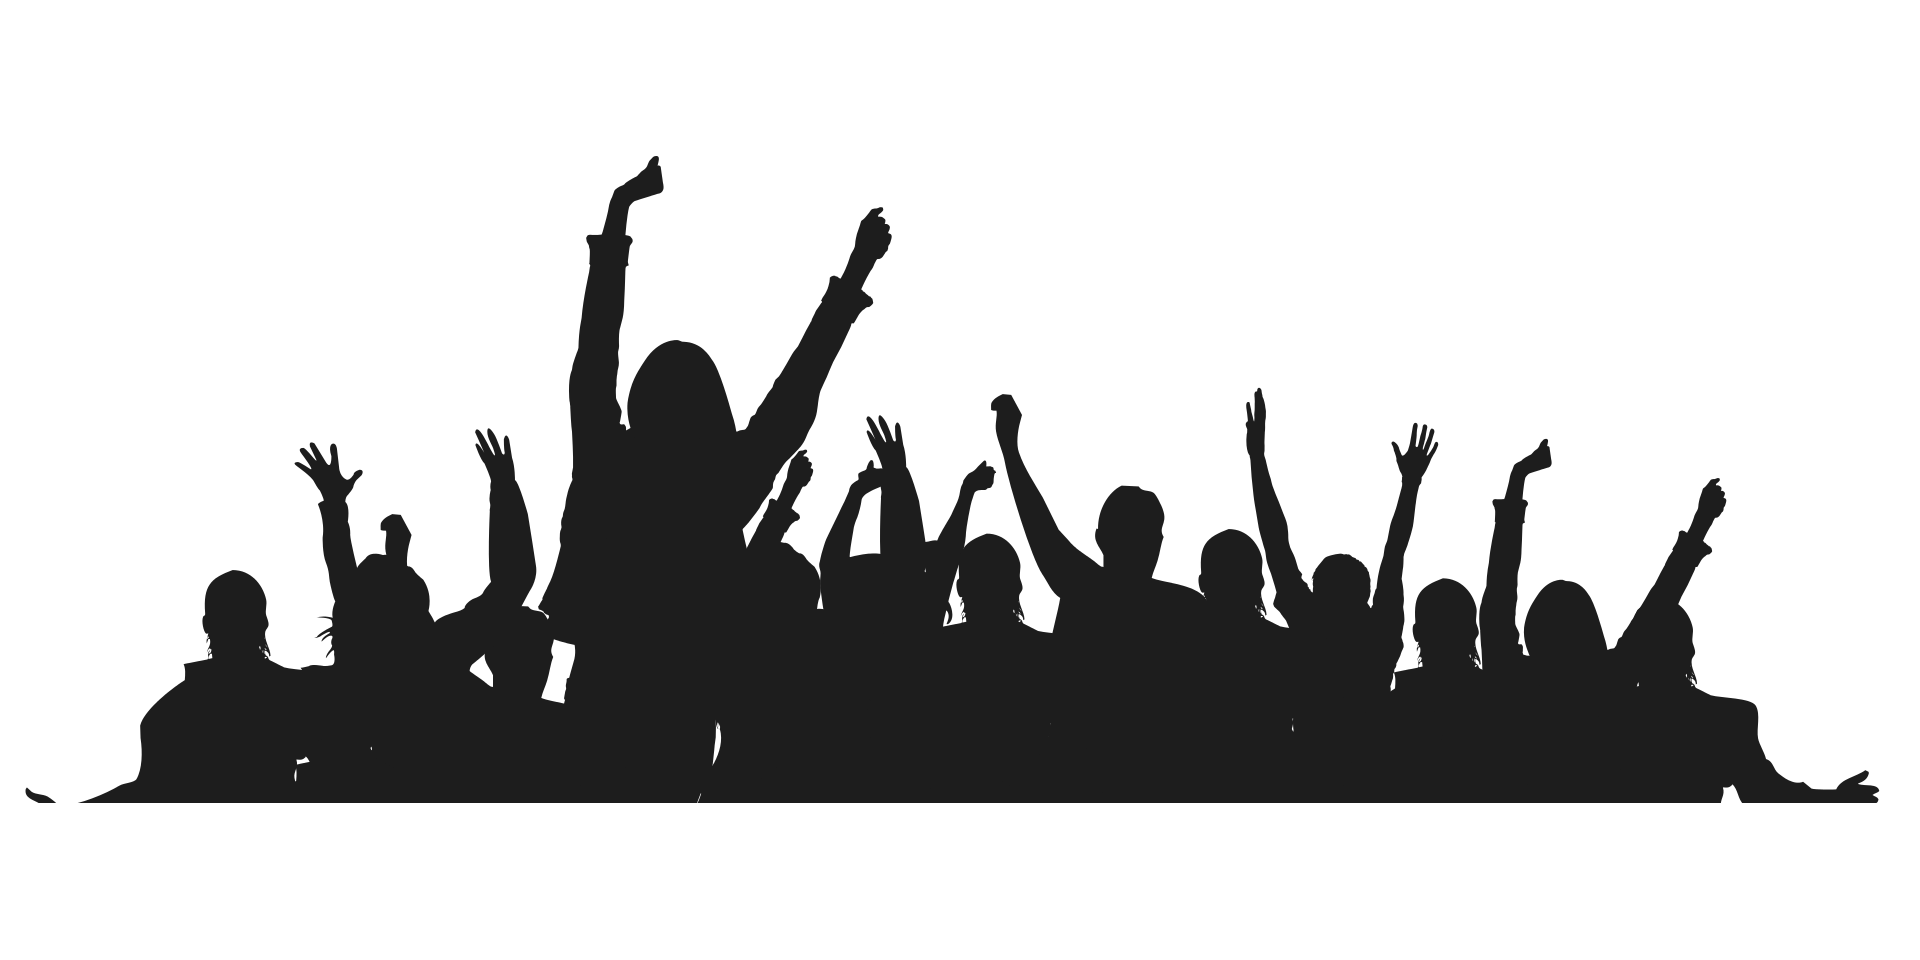 People,Crowd,Social group,Cheering,Silhouette,Font,Audience.